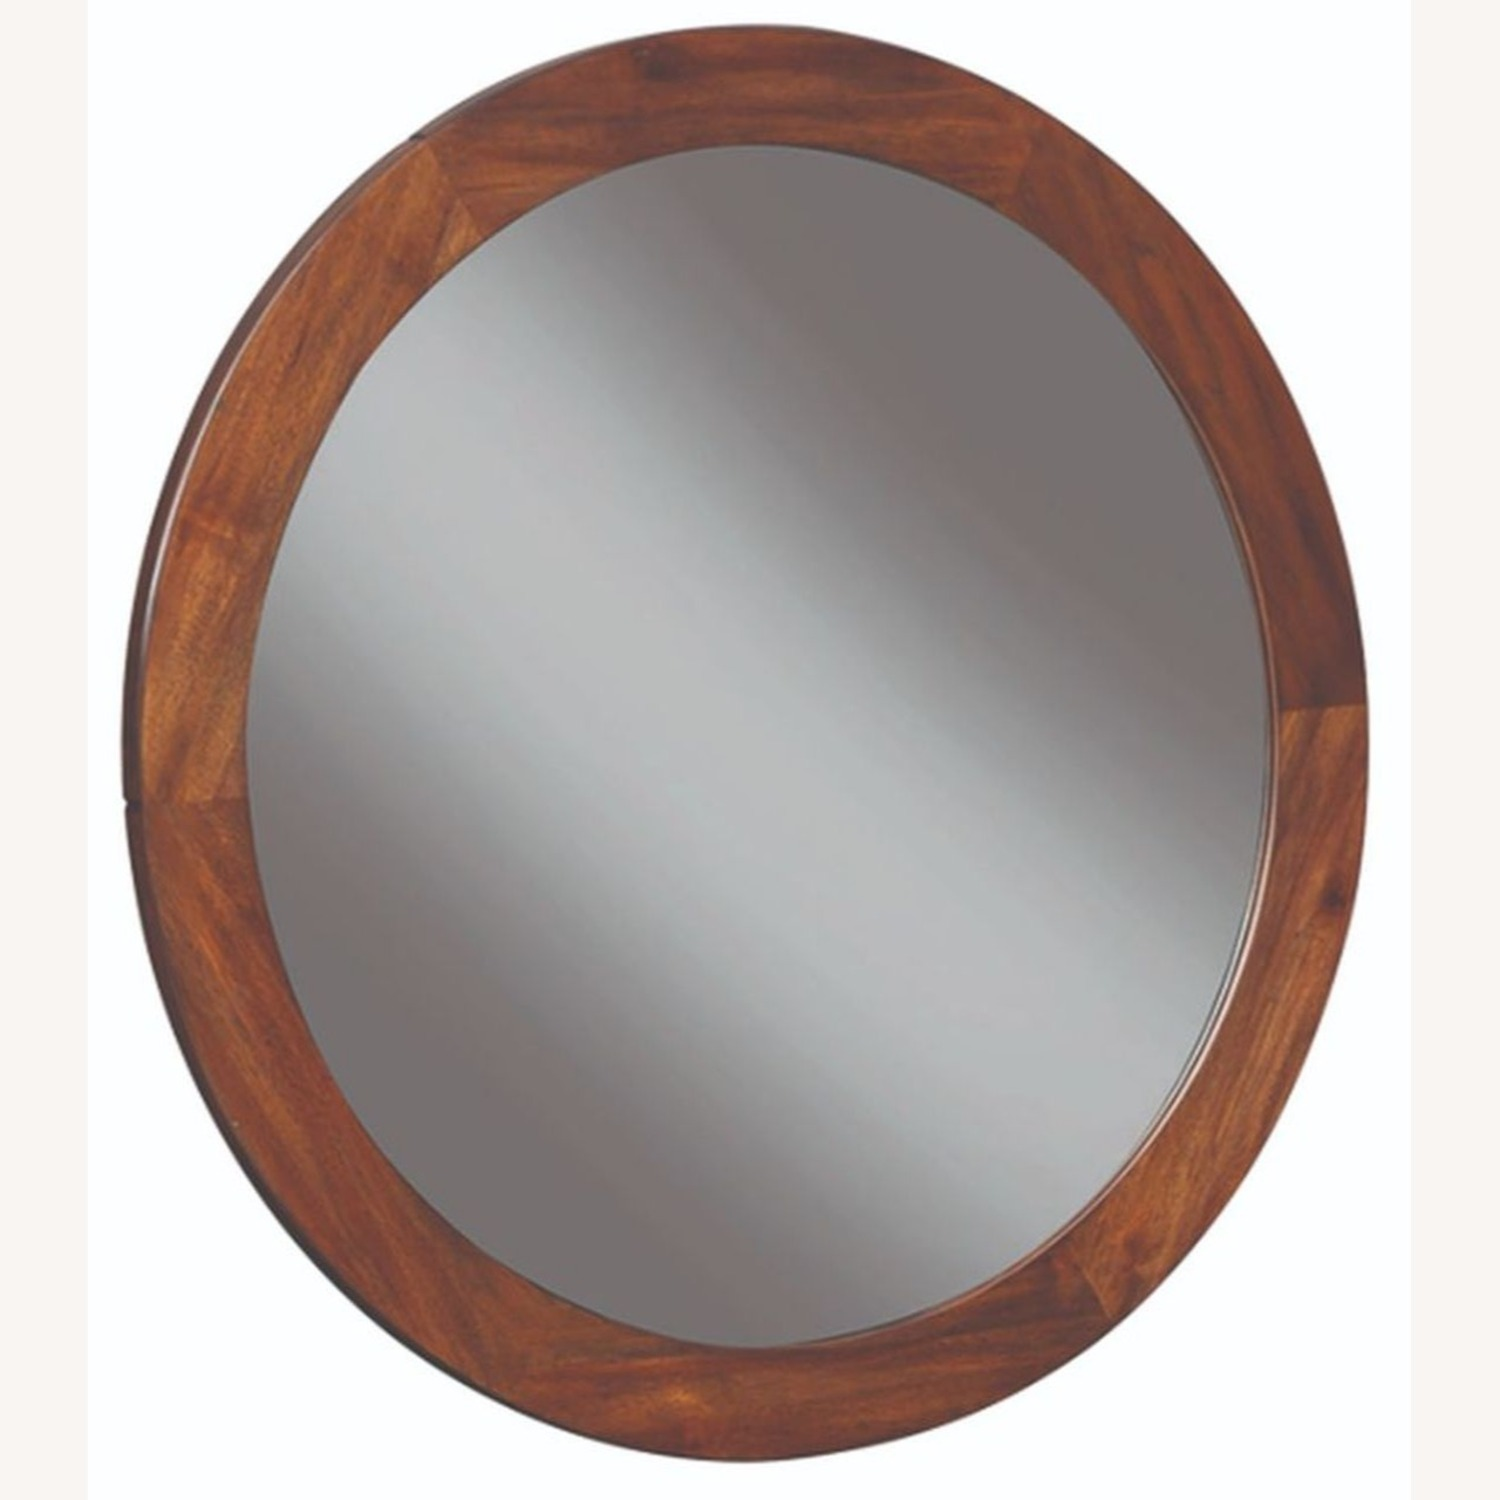 Mirror W/ Dessert Teak Wood Finish - image-0